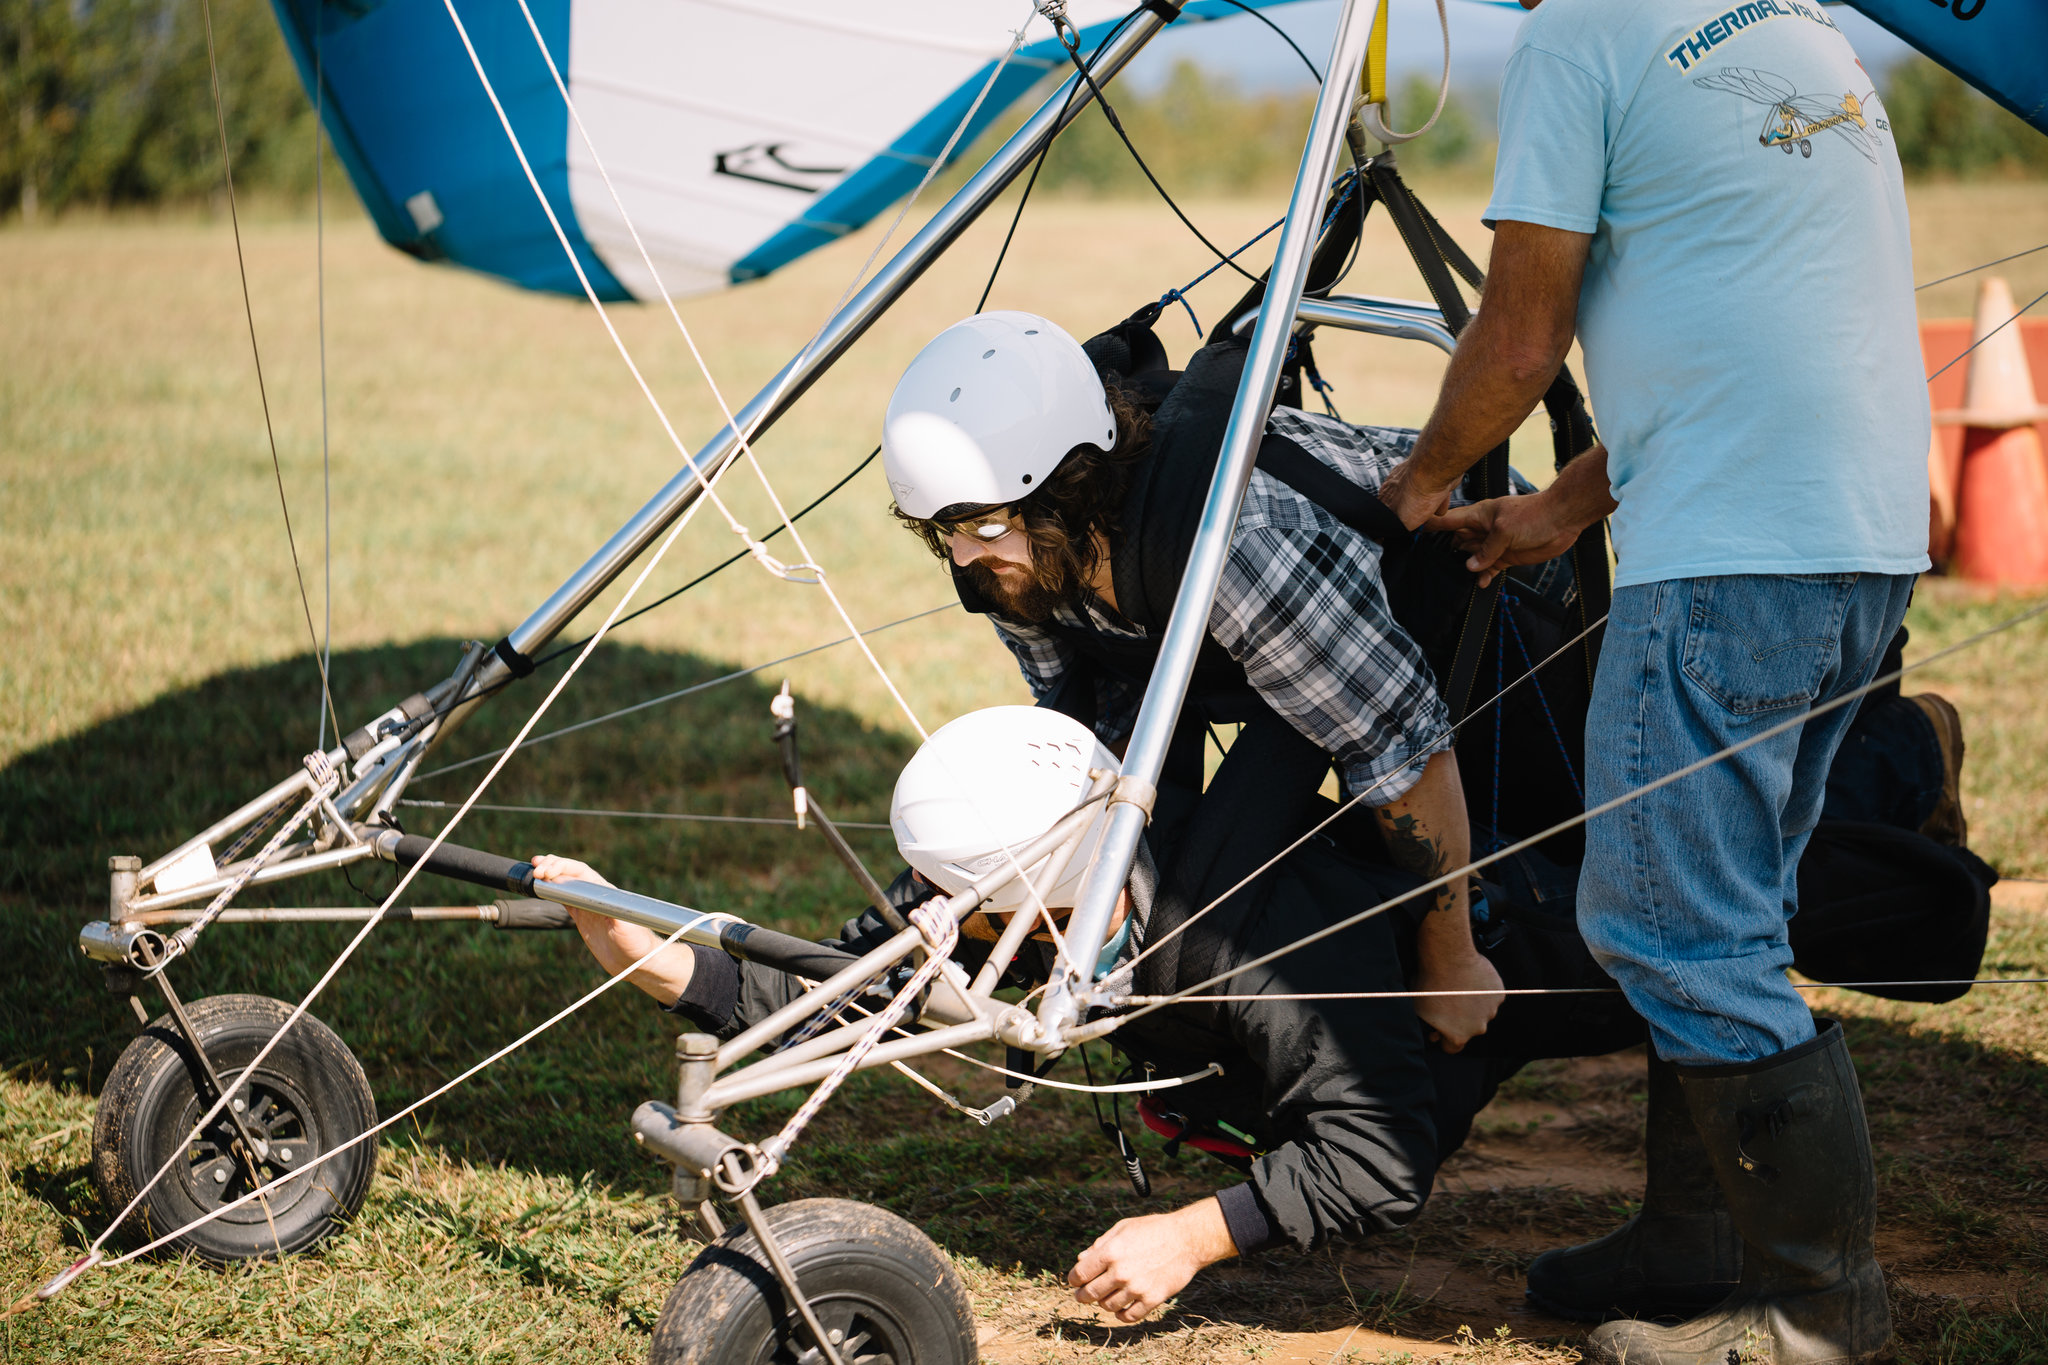 Revival Vlog: Behind the Scenes from our shoot with Thermal Valley Aerosports for Our State Magazine